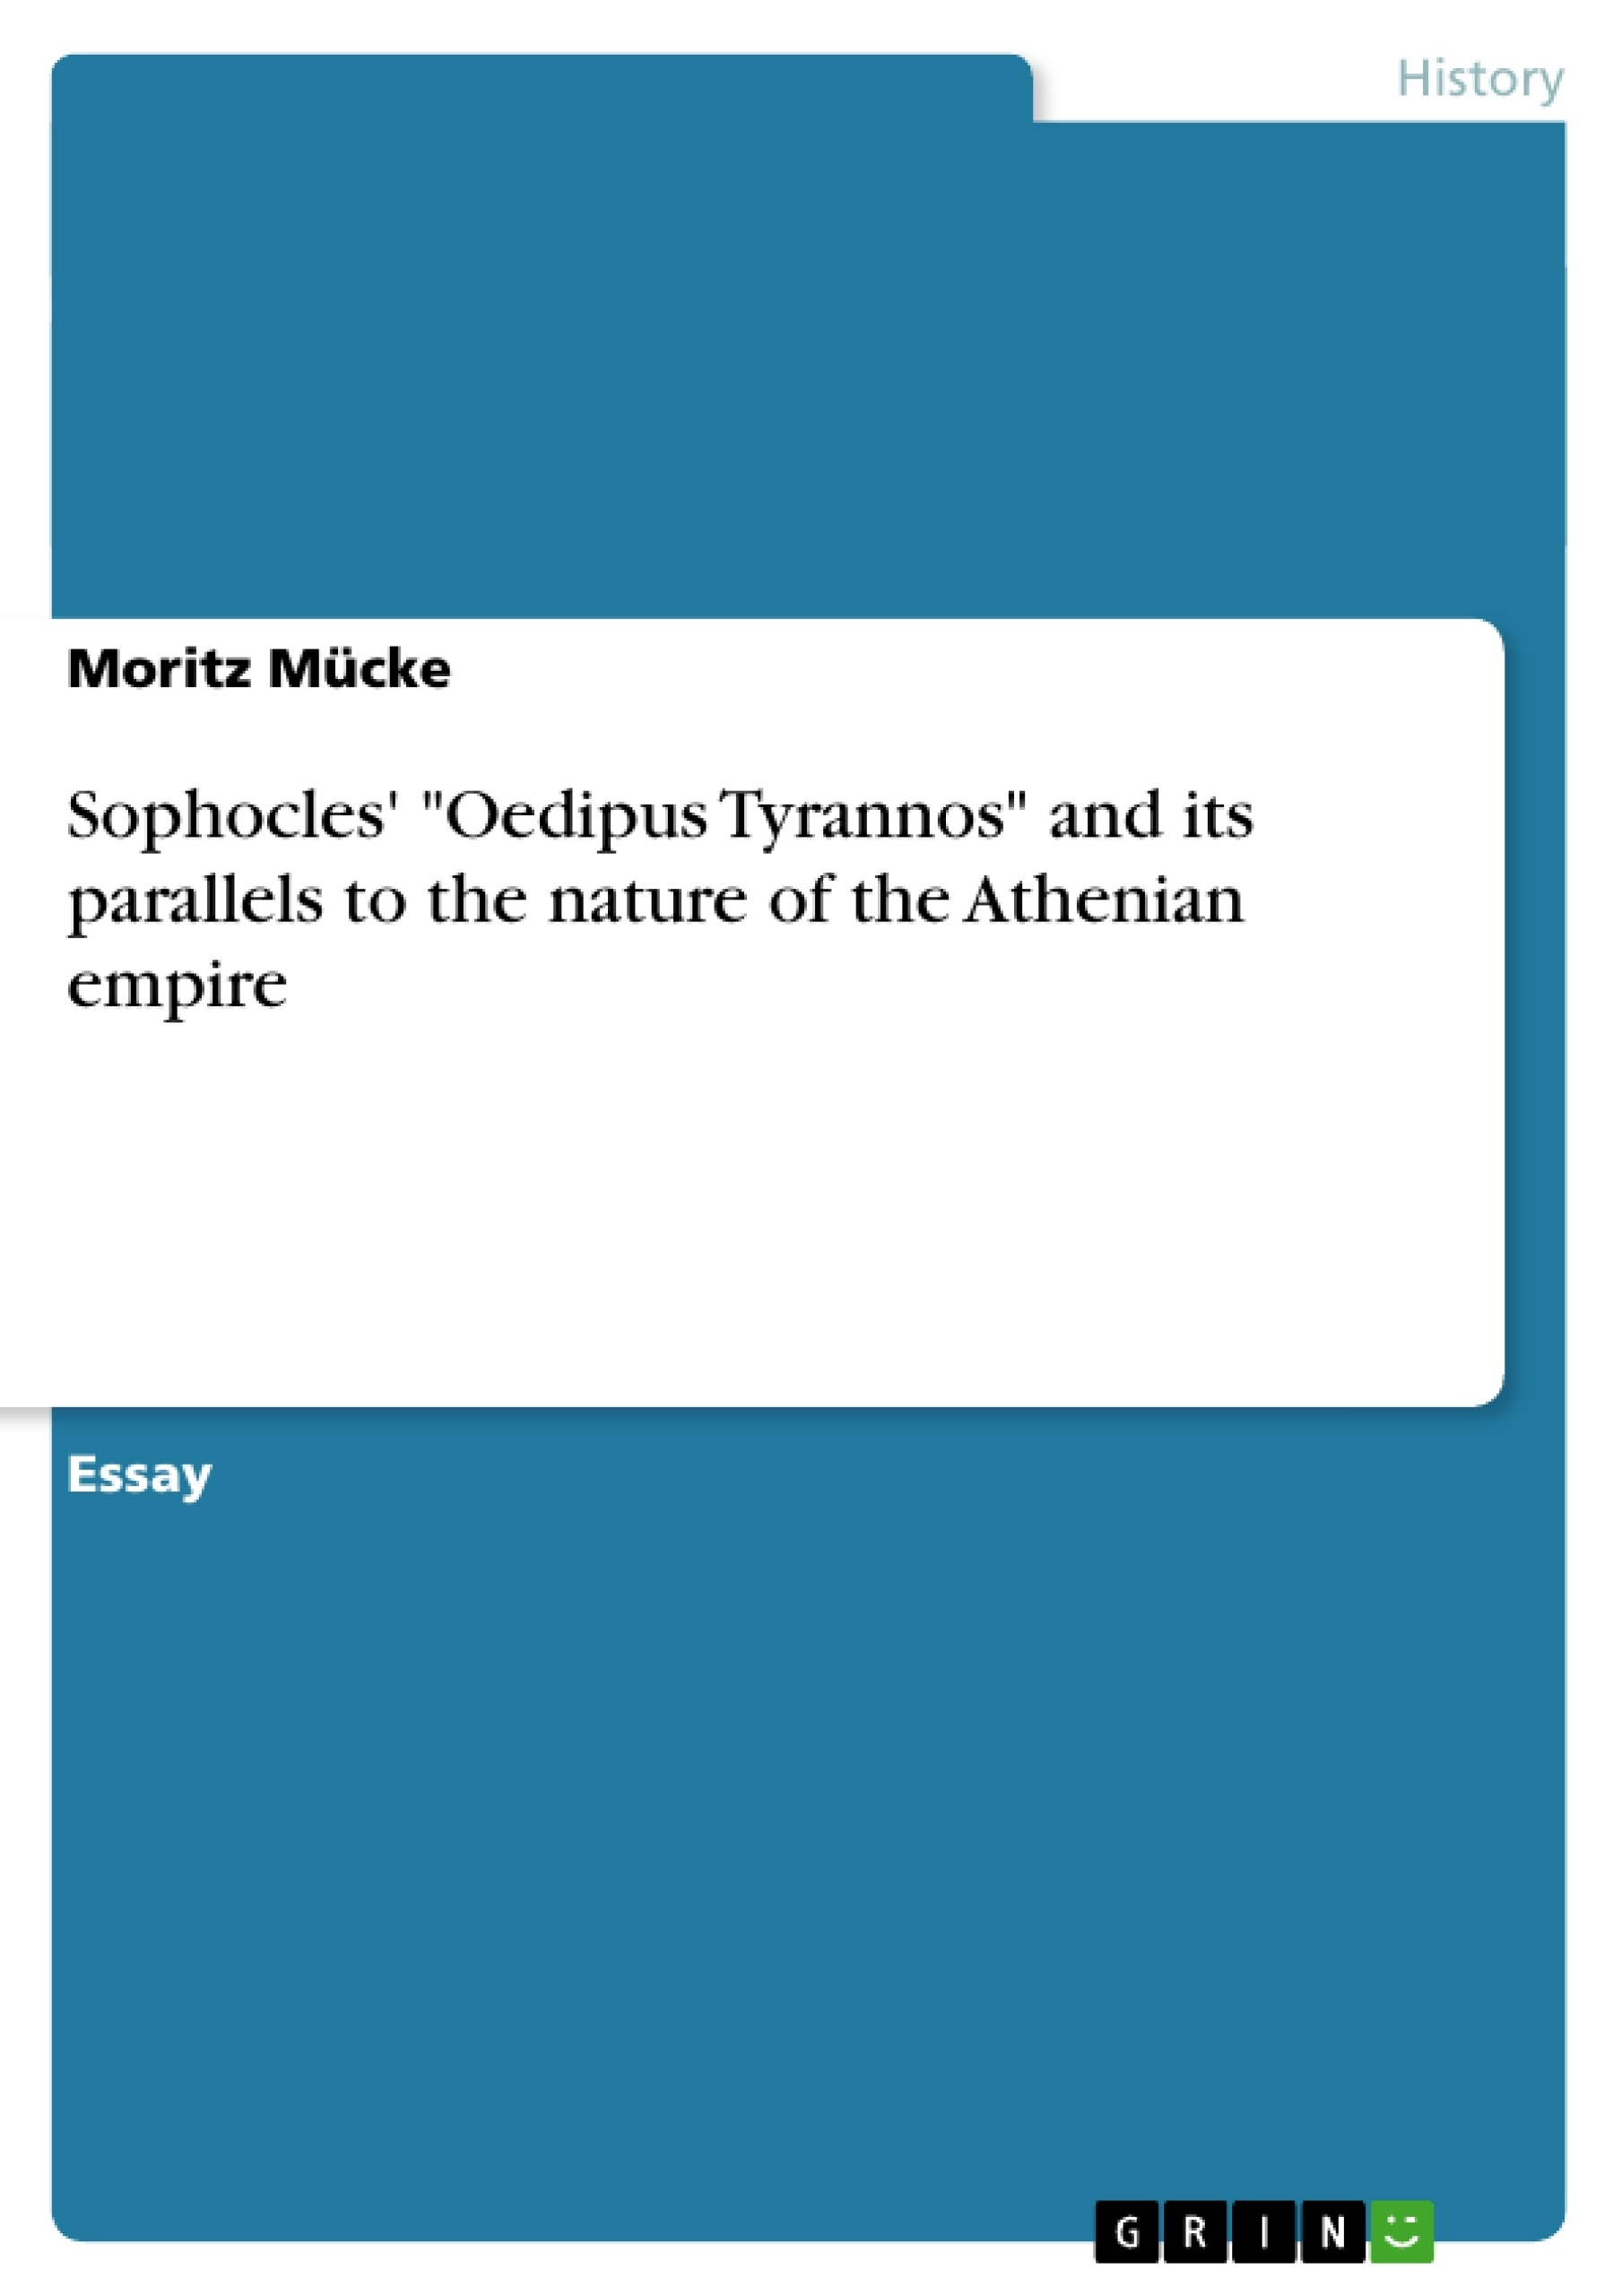 """Title: Sophocles' """"Oedipus Tyrannos"""" and its parallels to the nature of the Athenian empire"""